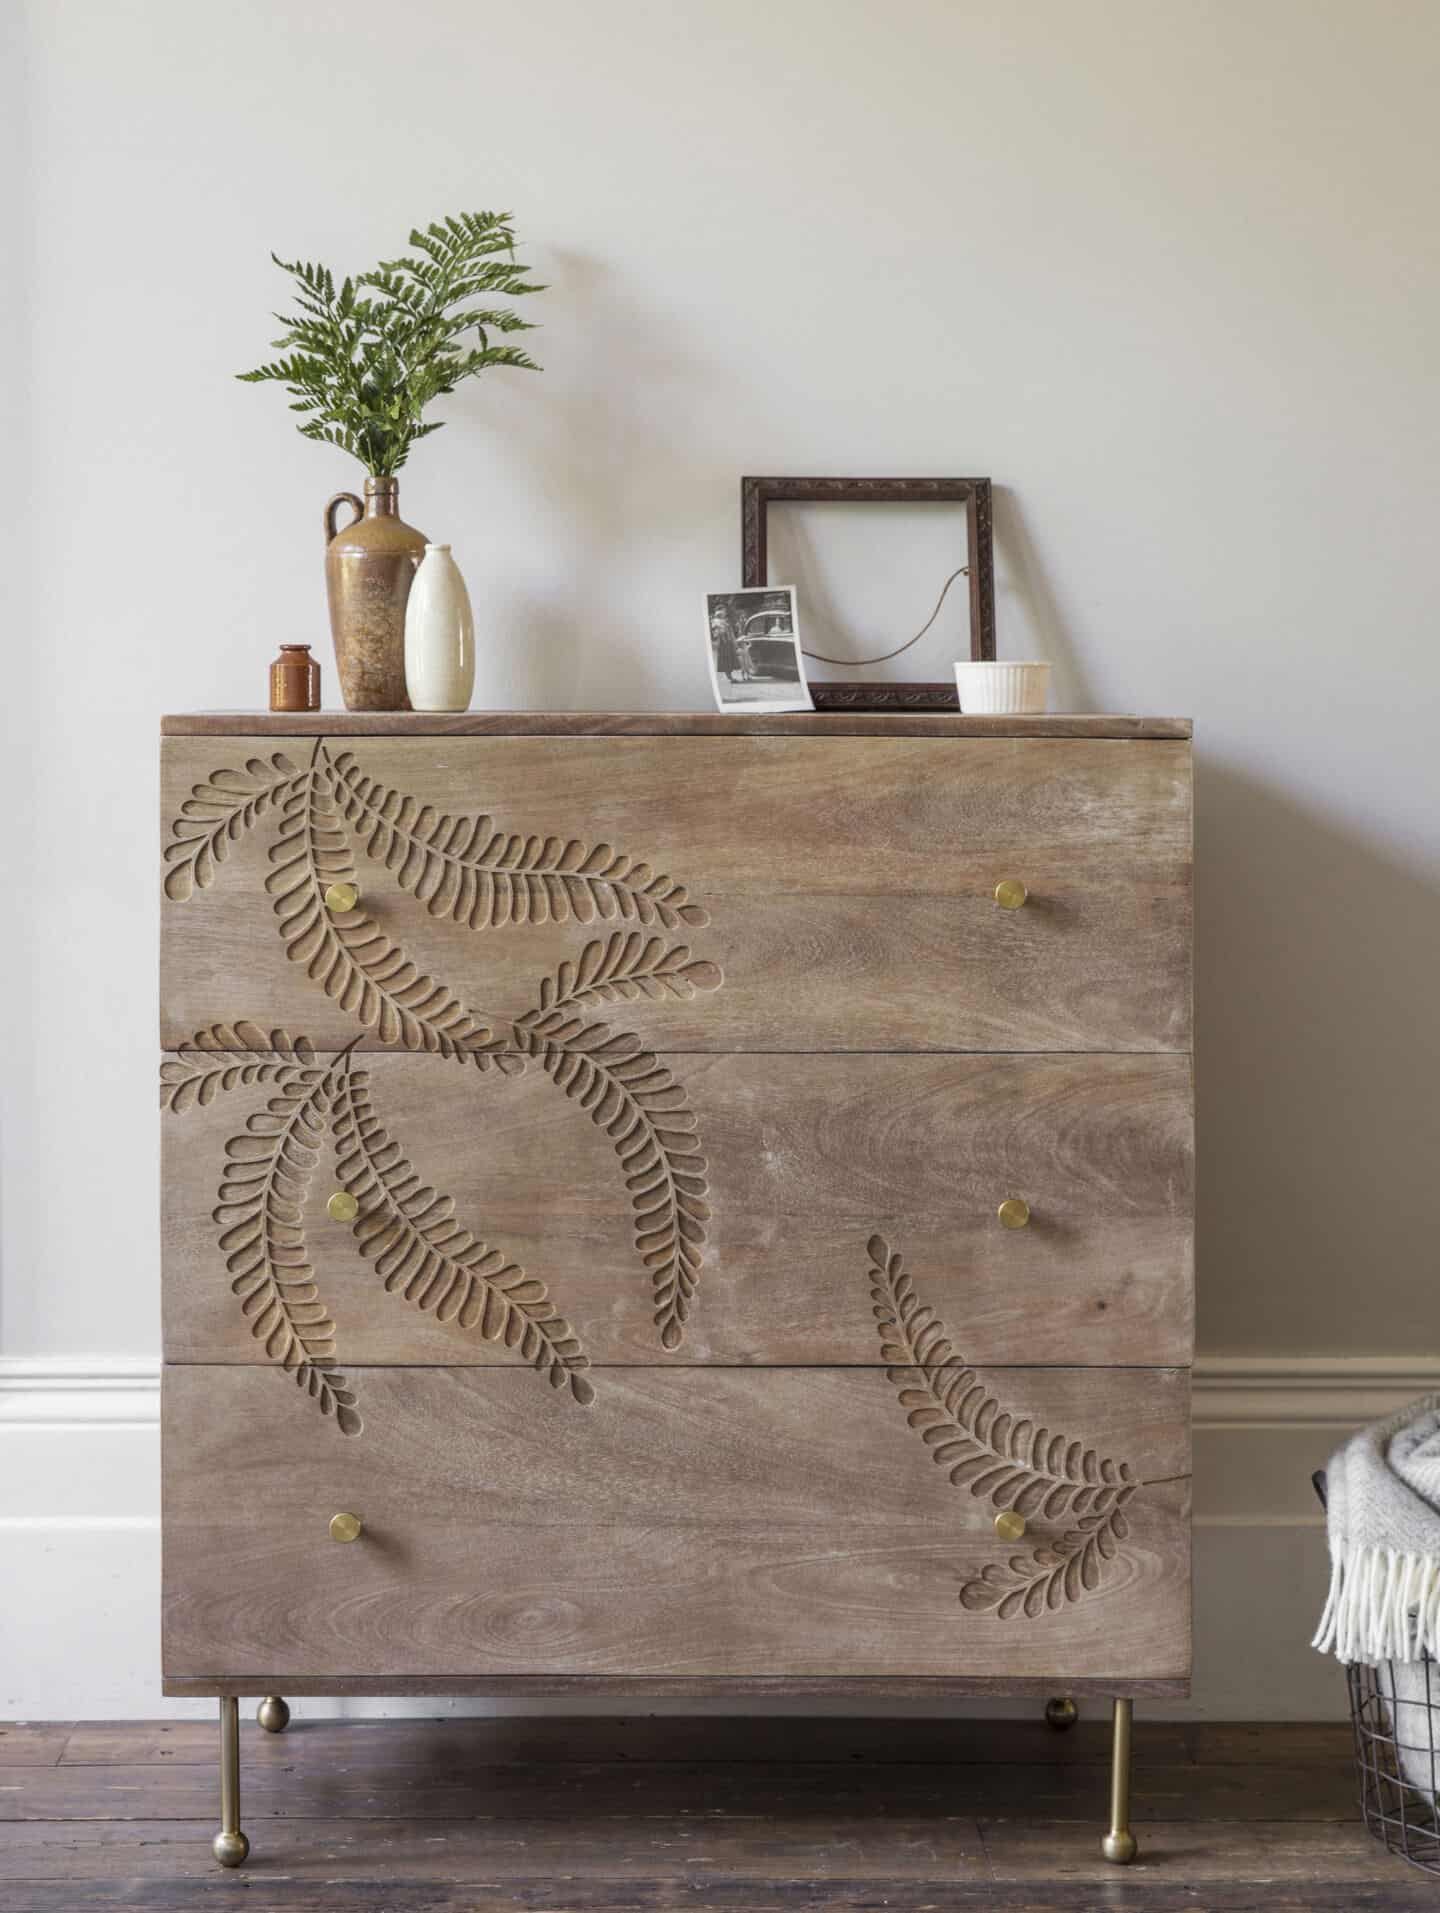 Bringing Natural Elements into the Home. A wooden chest of drawers with a large fern leaf etched into the surface